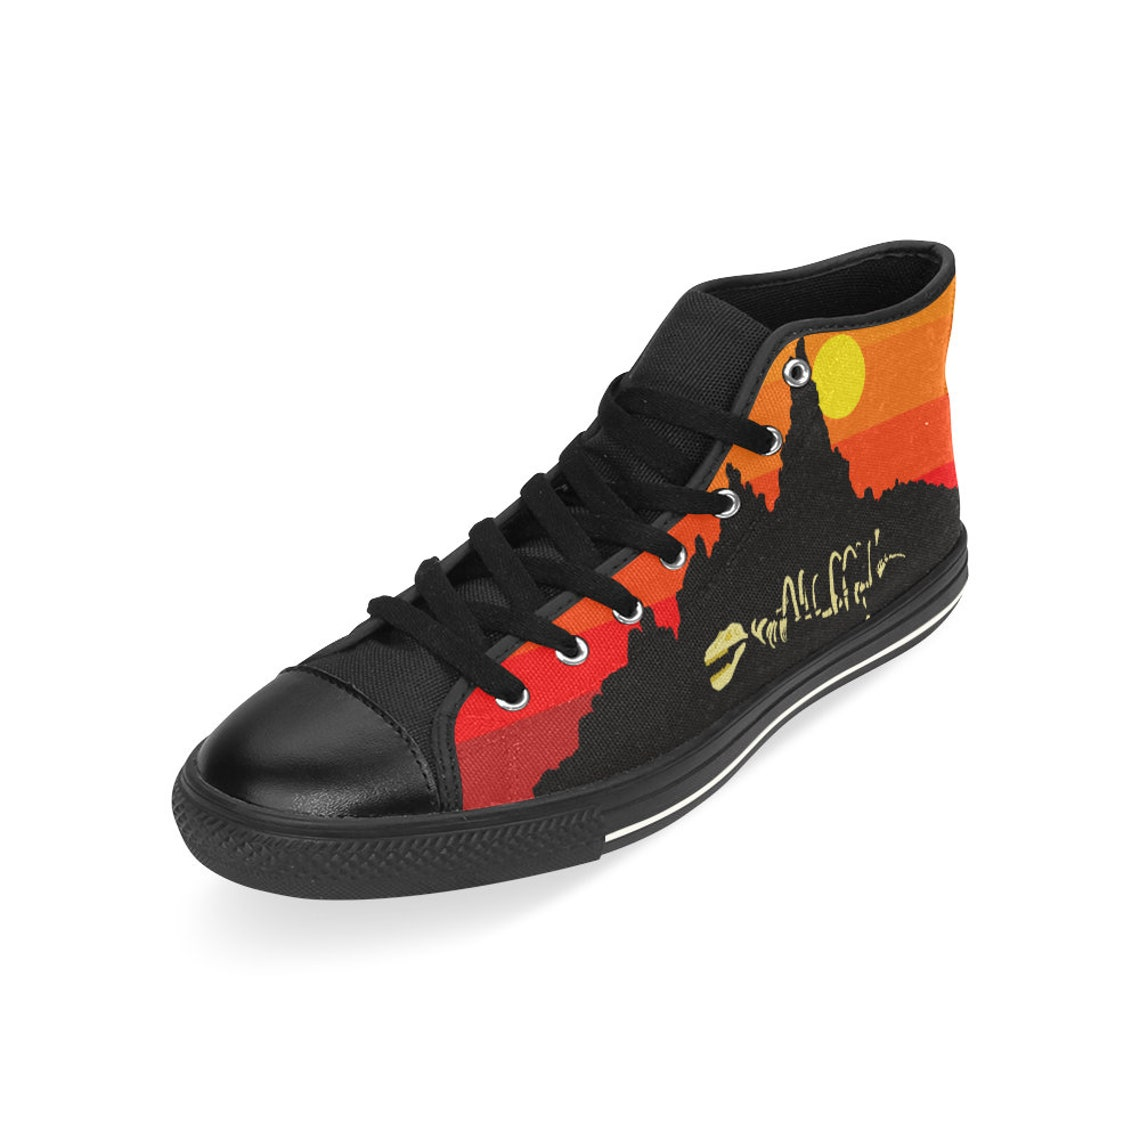 Big Thunder Mountain Inspired Sneakers For Men And Women - Sale p3HAI